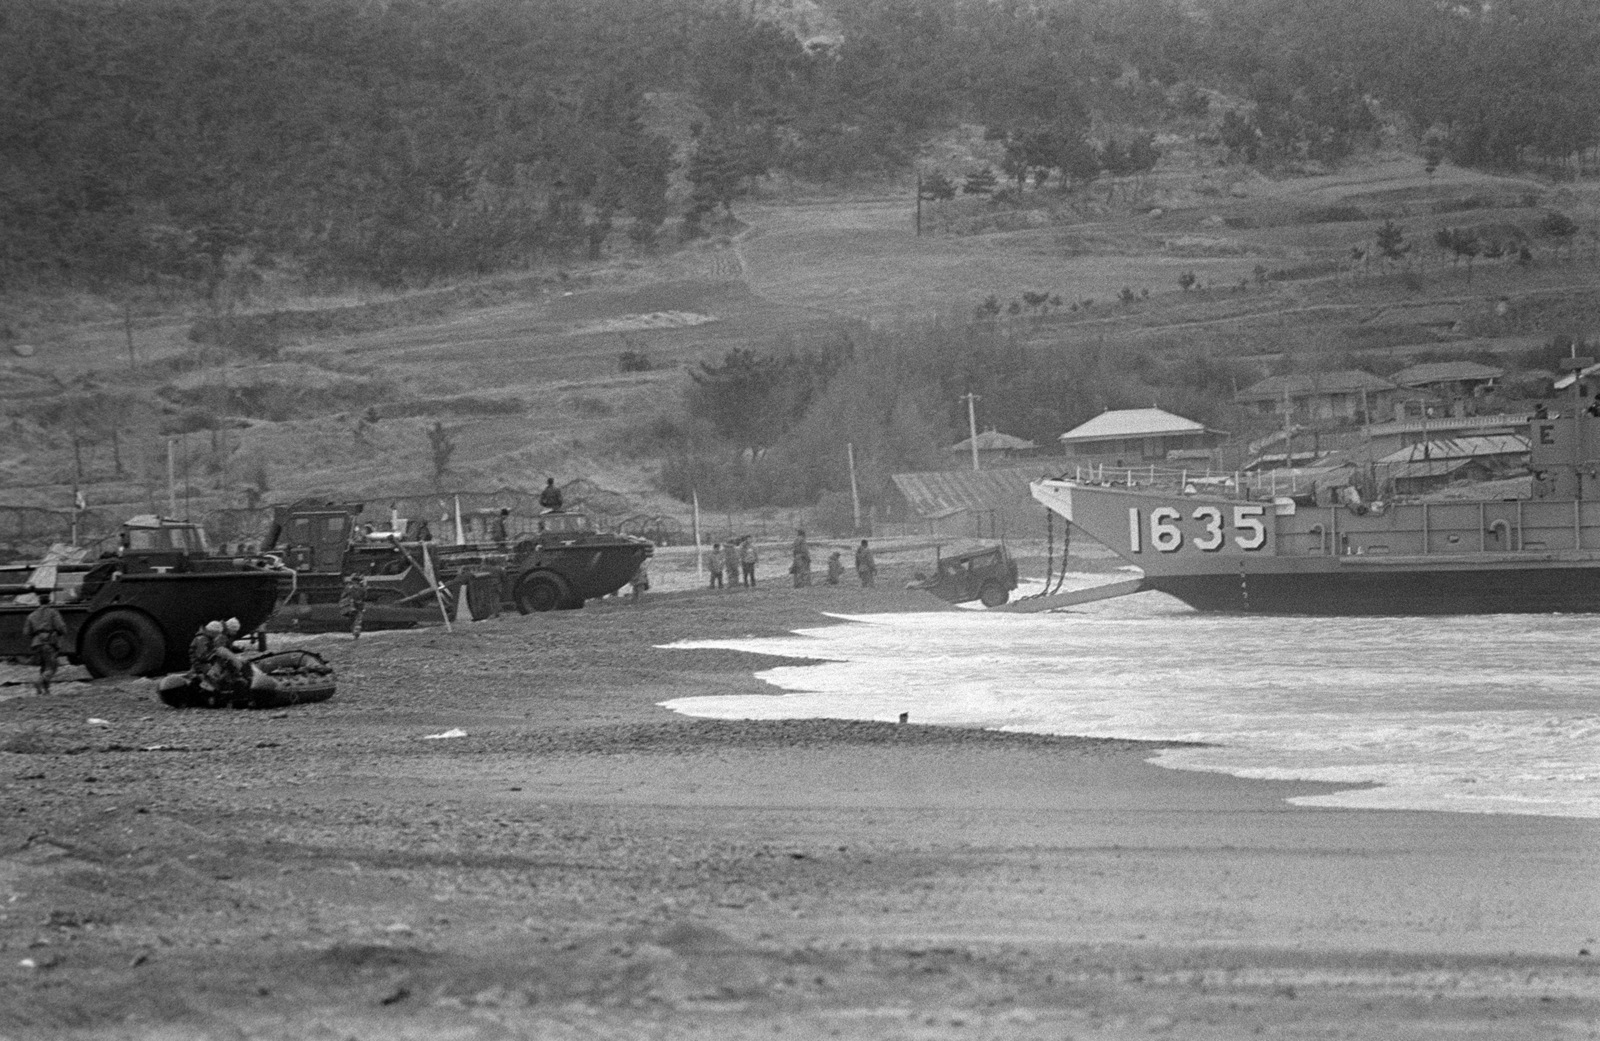 PHCS Ron Bayles South Korea....Vehicles come ashore from utility landing craft 1635 (LCU-1635) during exercise Team Spirit '86. OFFICIAL U.S. NAVY PHOTO (RELEASED)